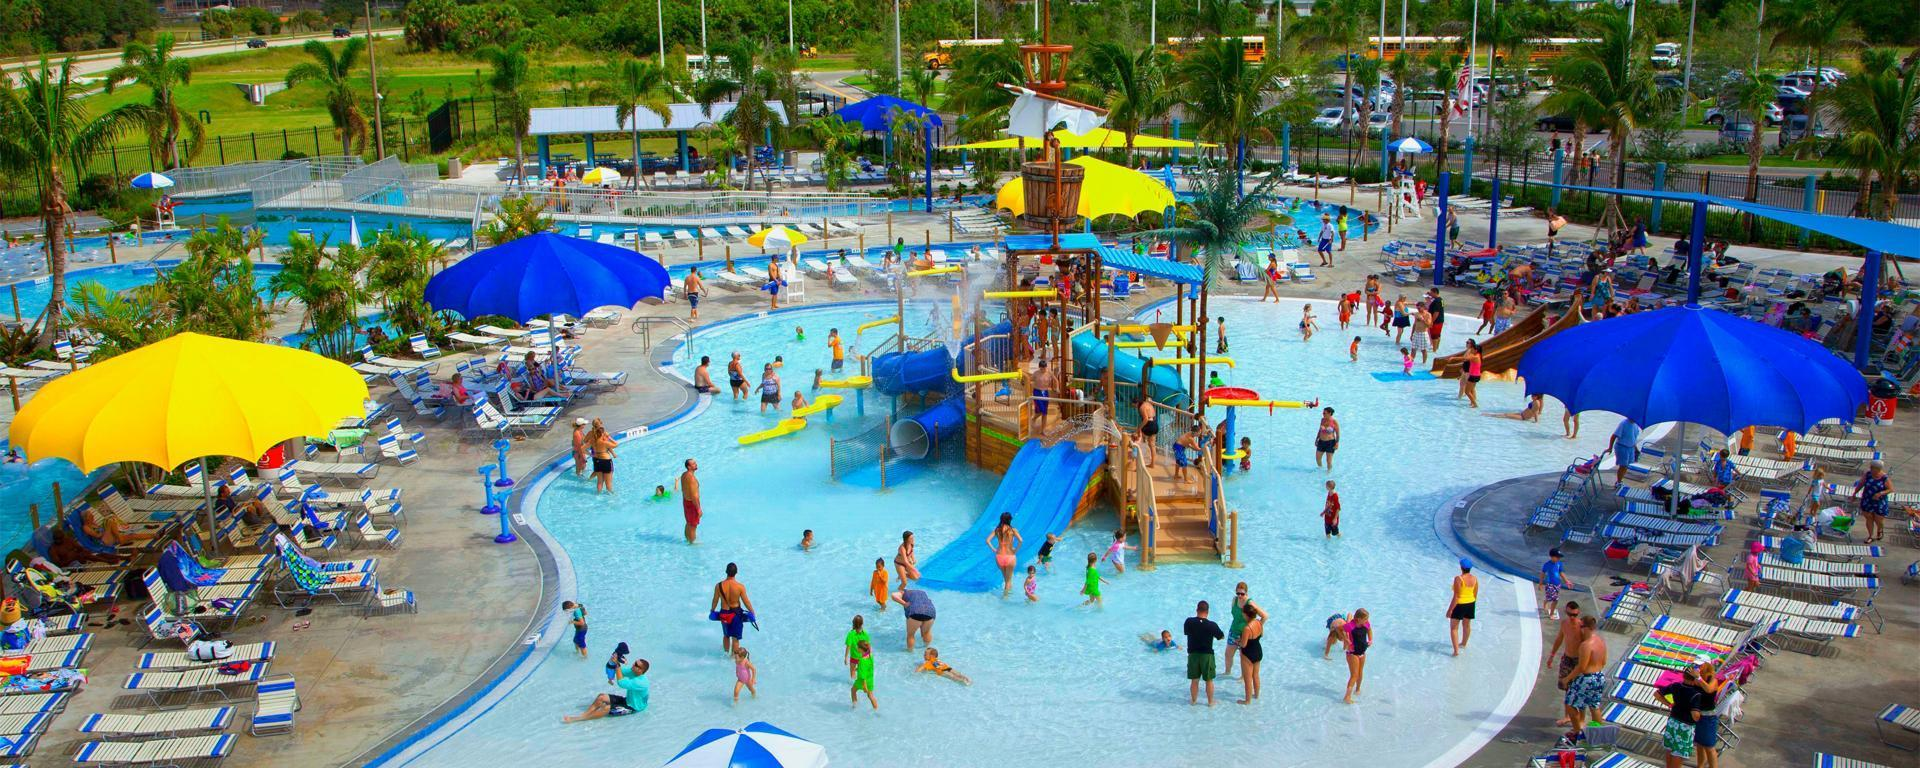 Overview of Sailfish Splash Waterpark